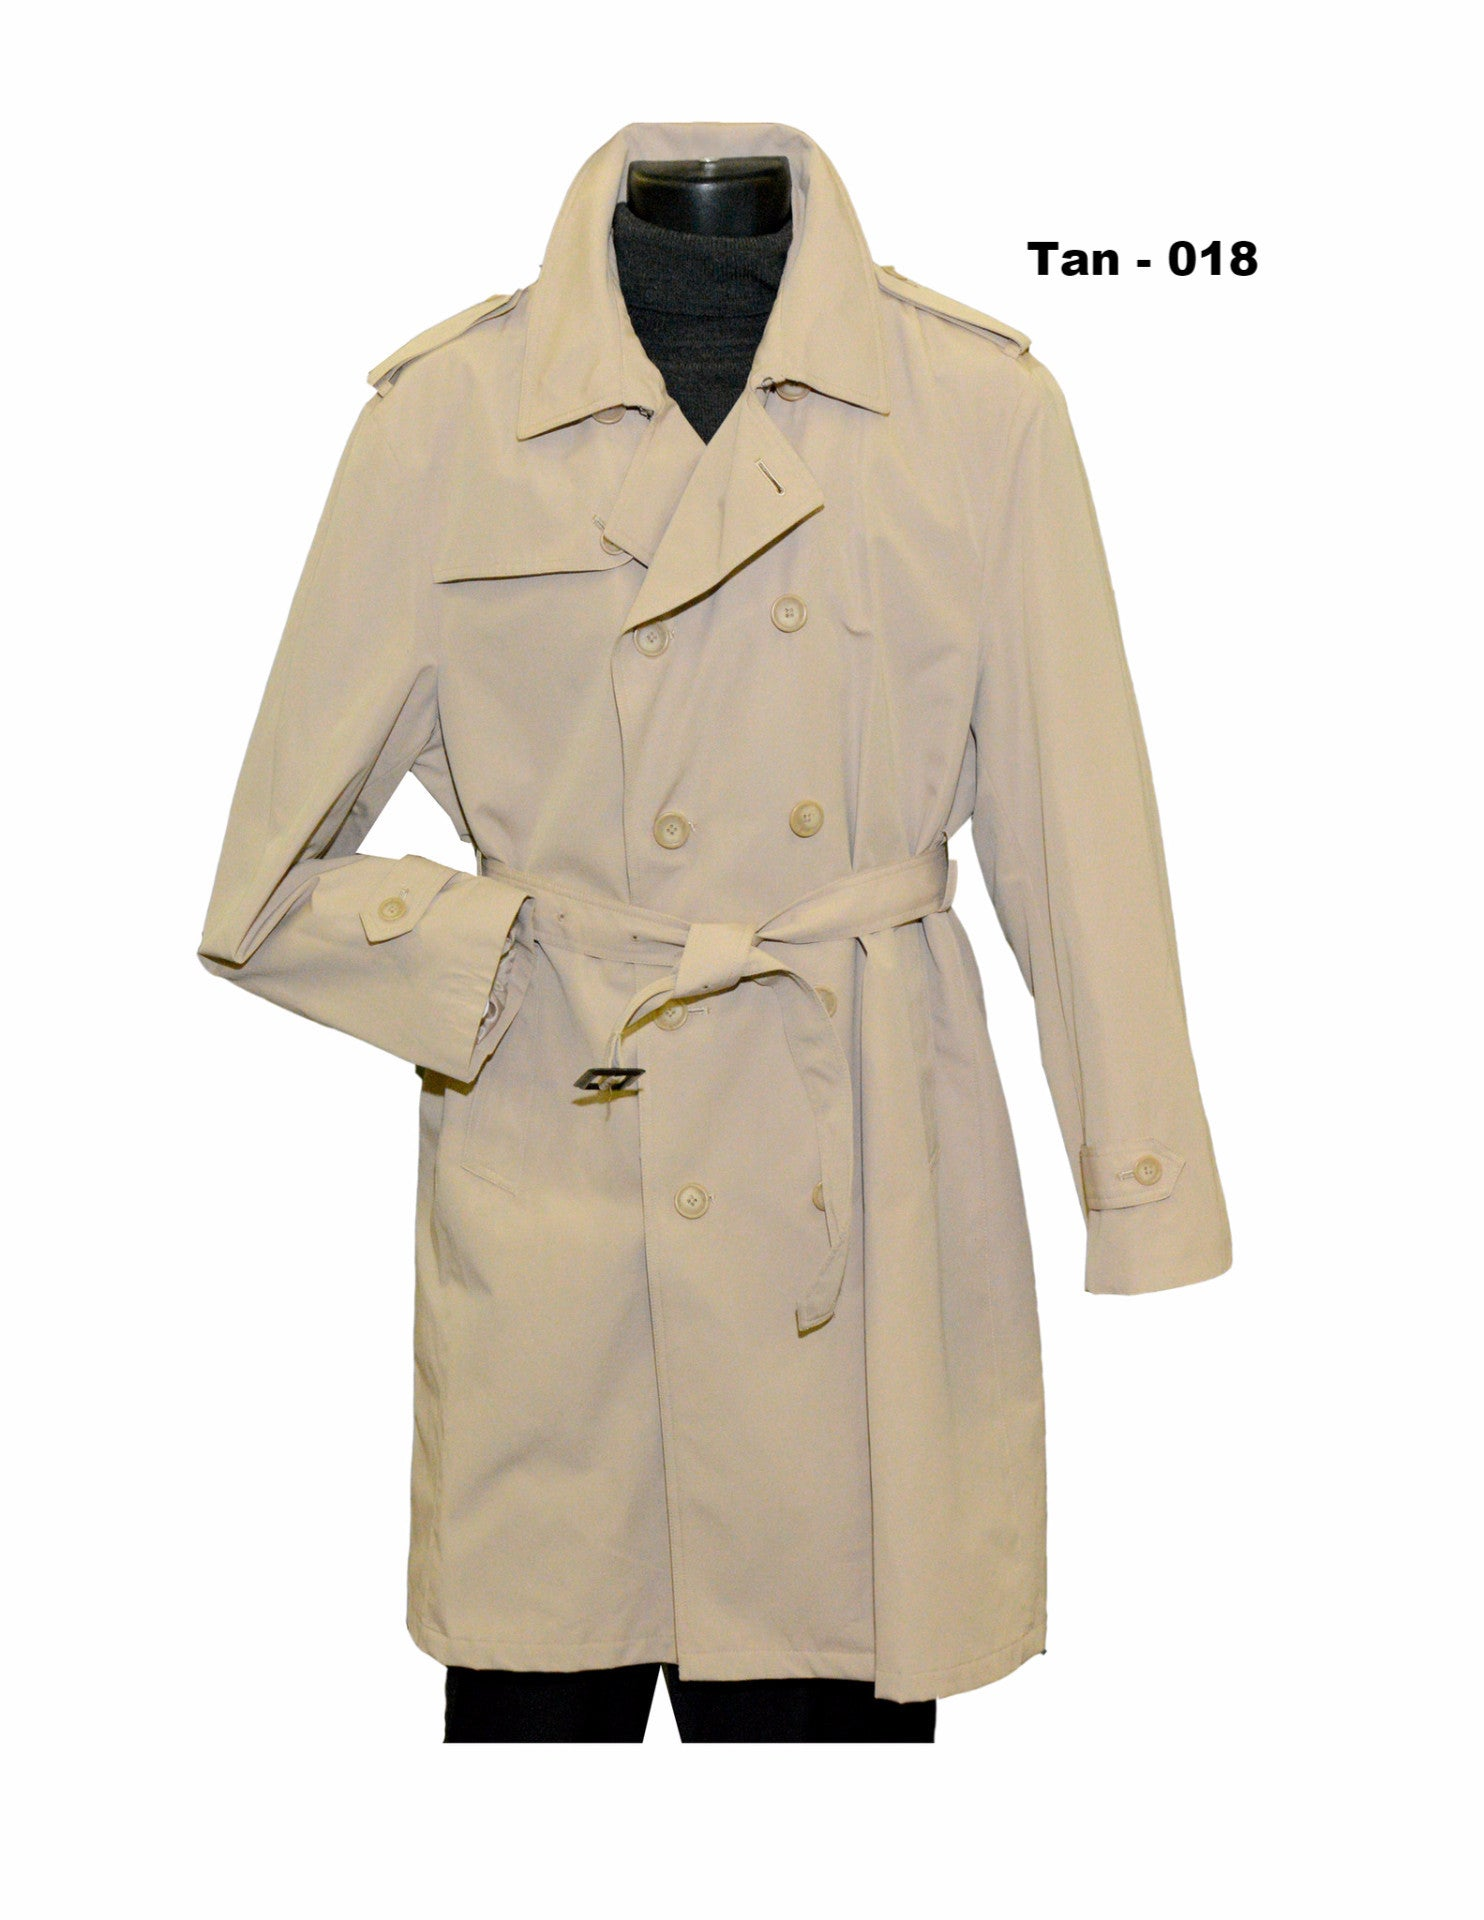 tan double breasted 44 inch full length rain coat outerwear